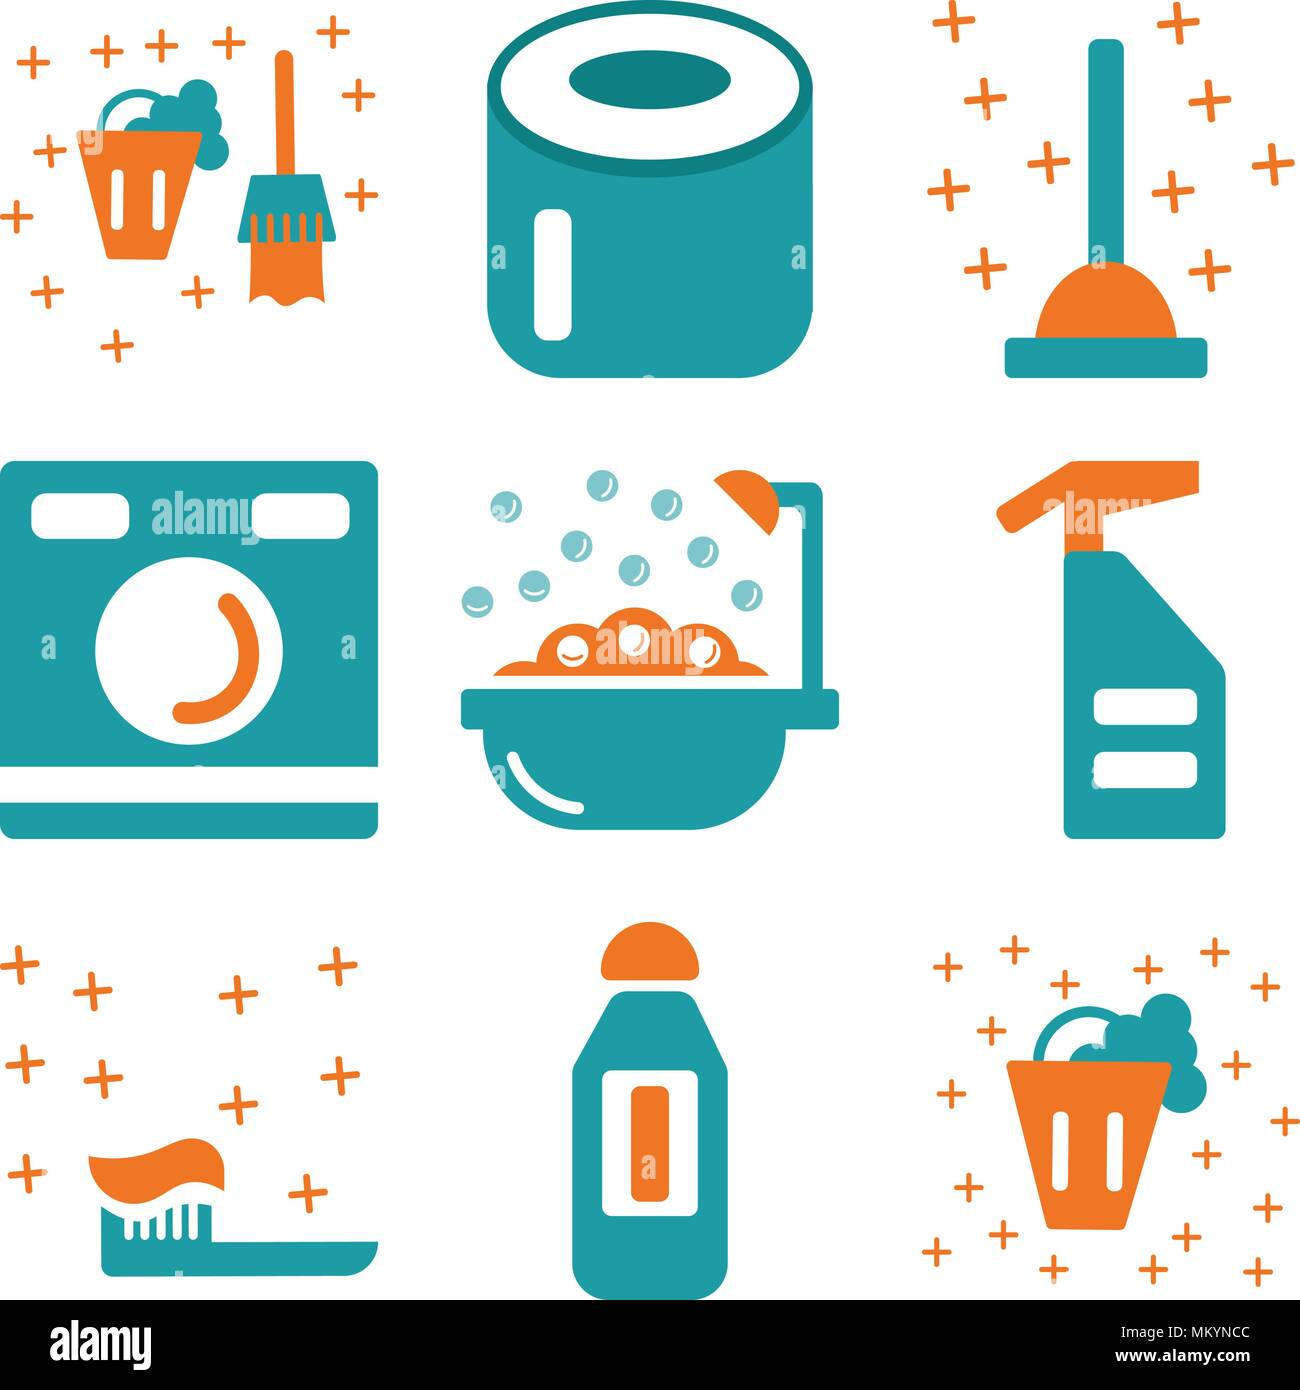 Set Of 9 Simple Editable Icons Such As Bucket, Bleach, Toothbrush, Spray,  Bathtub, Washing Machine, Plunger, Toilet Paper, Can Be Used For Mobile, Web